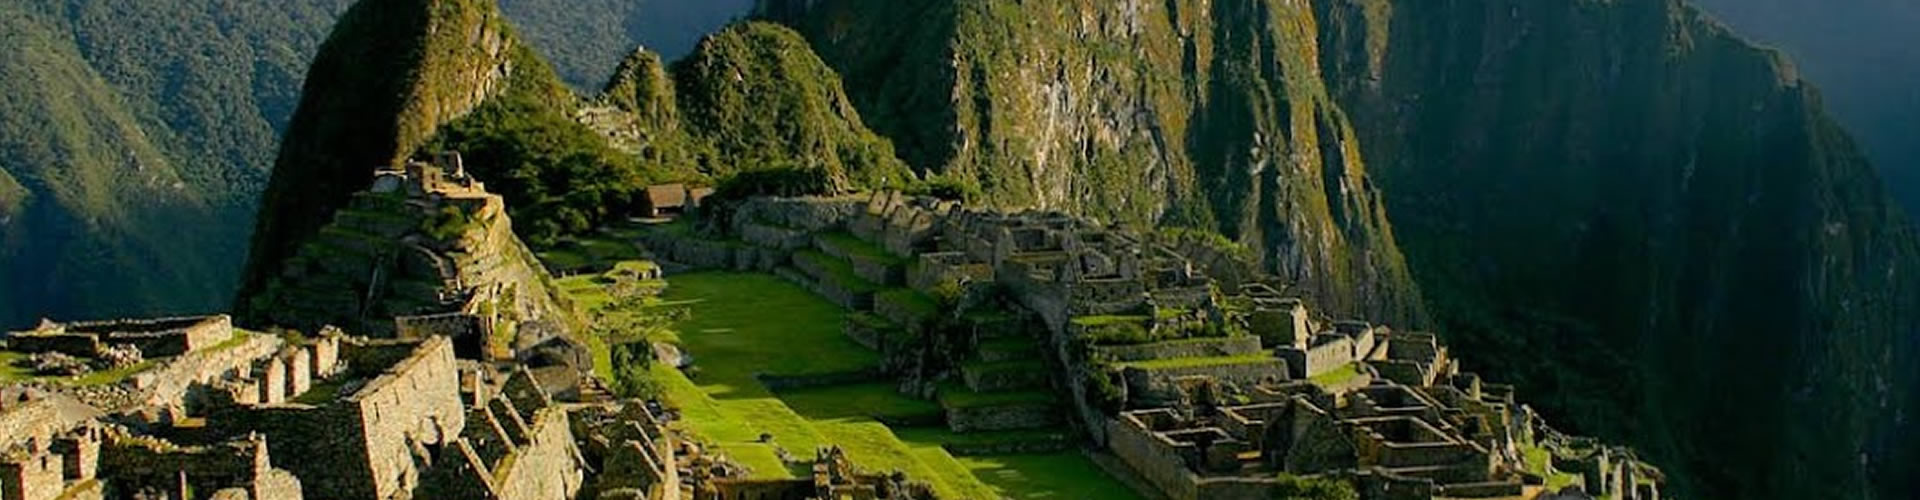 vacations holidays trips Package tours adventures peru